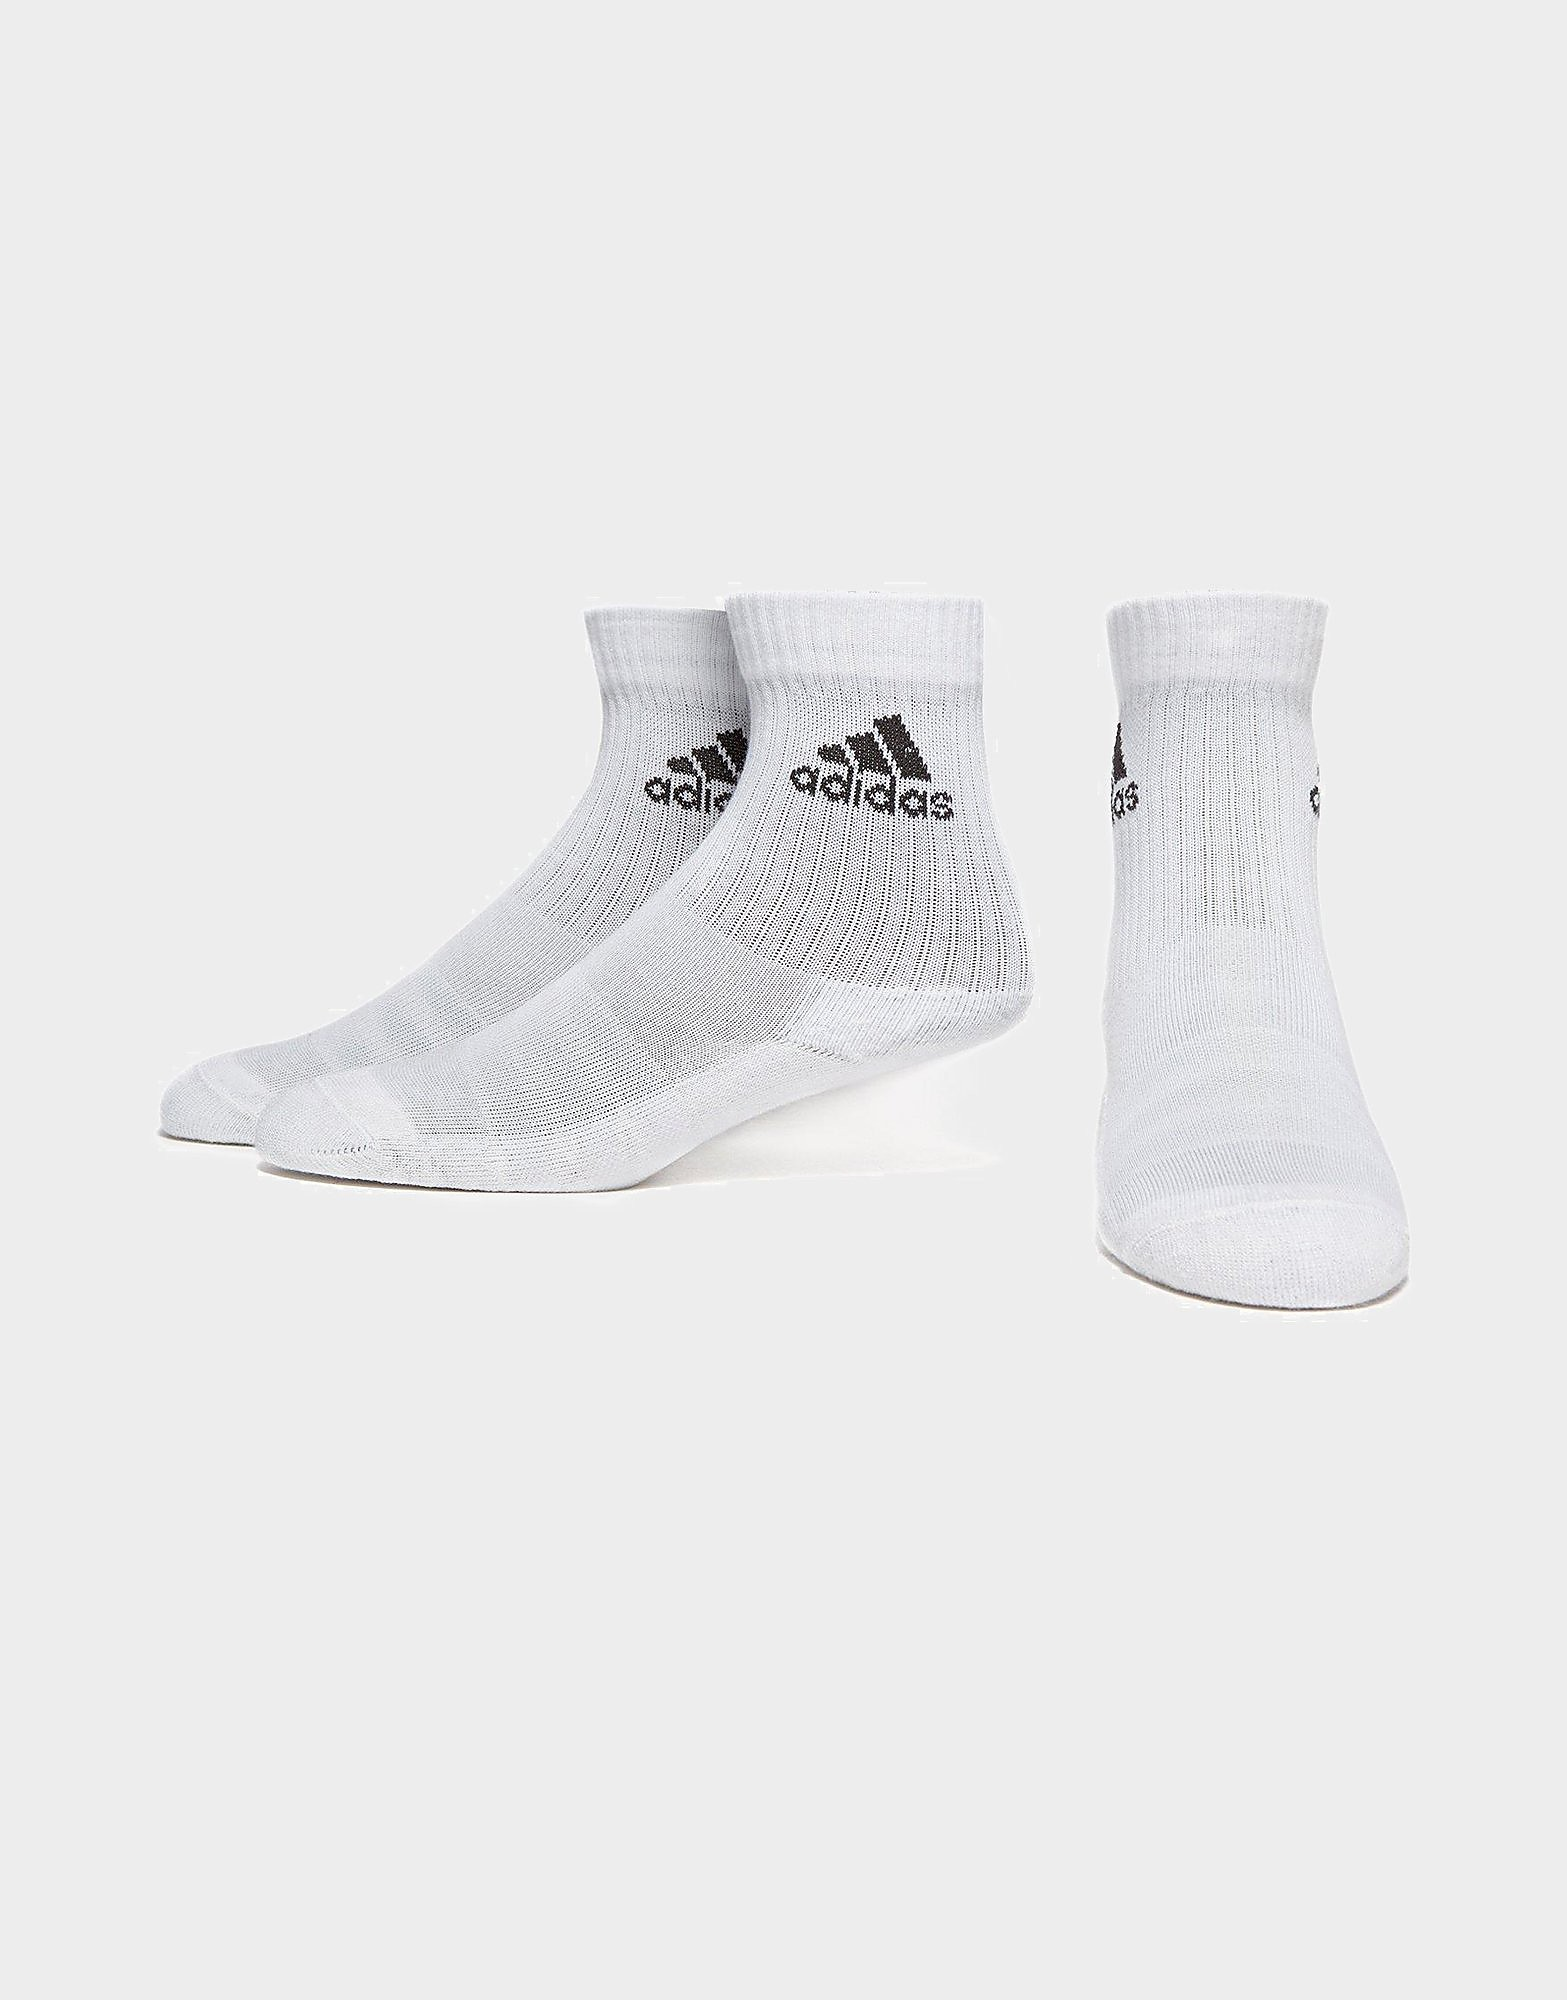 Image of   adidas 3 Stripe Performance Crew 3 Pack Socks